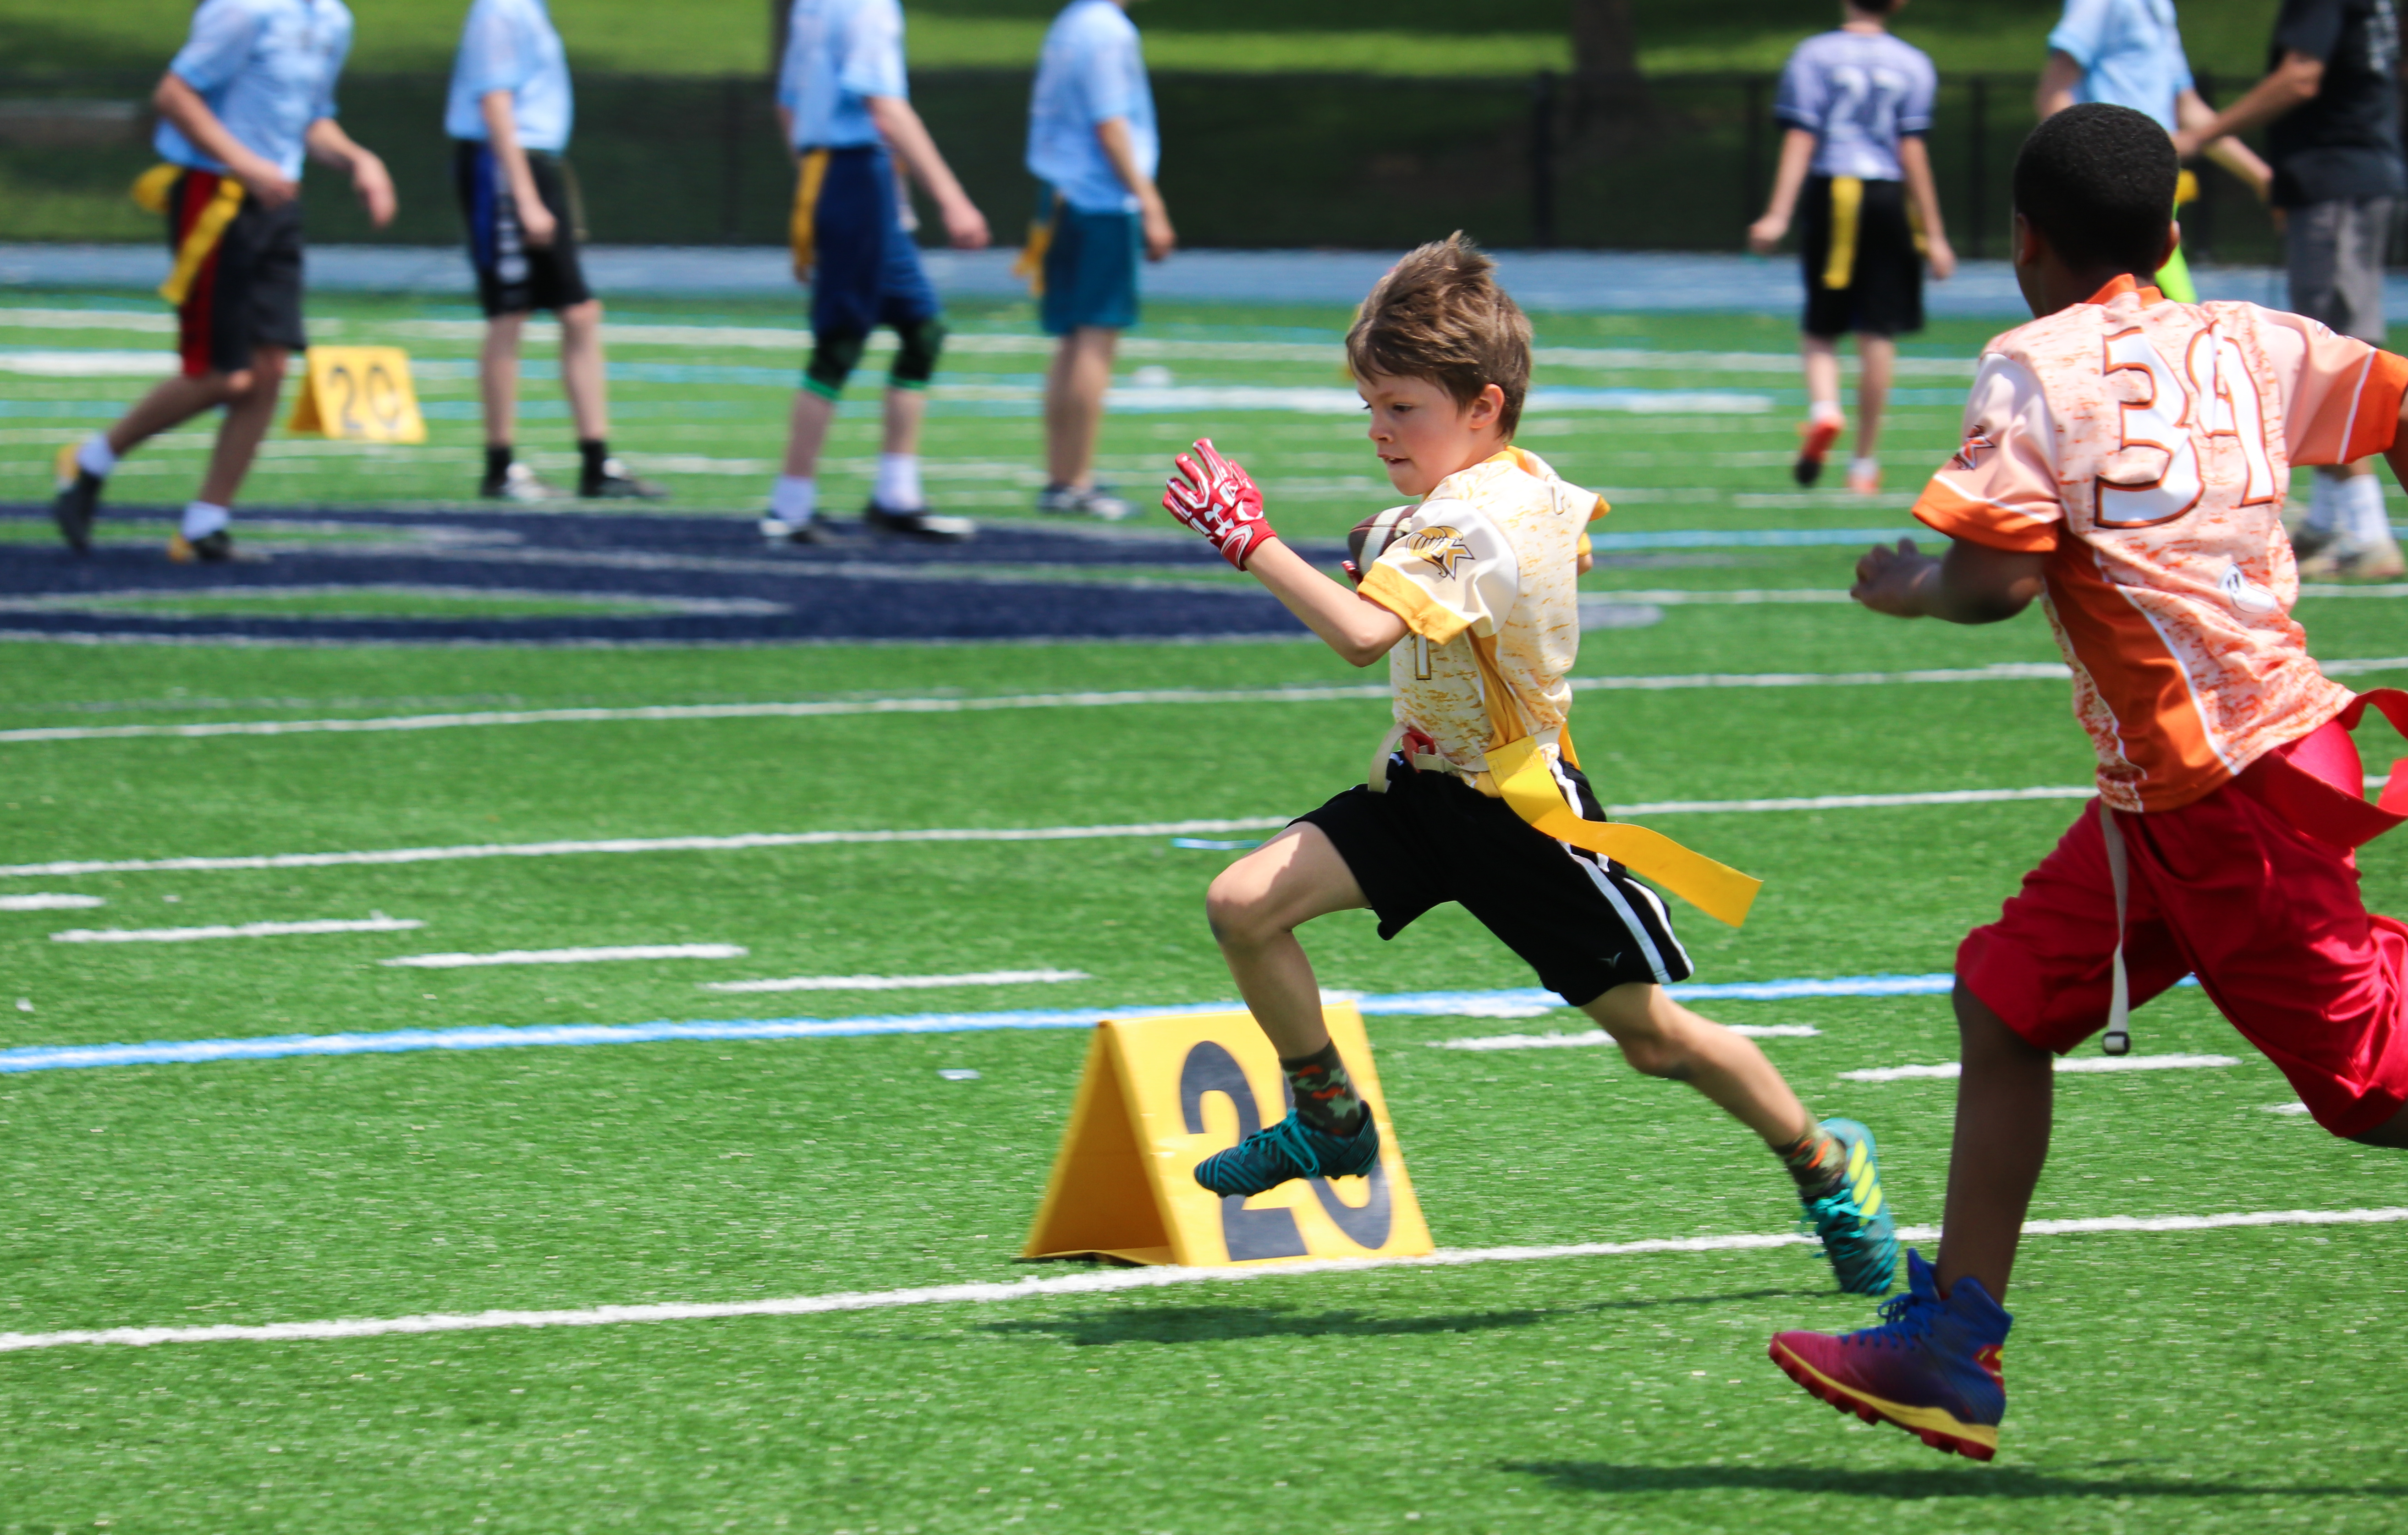 Summer Flag Football